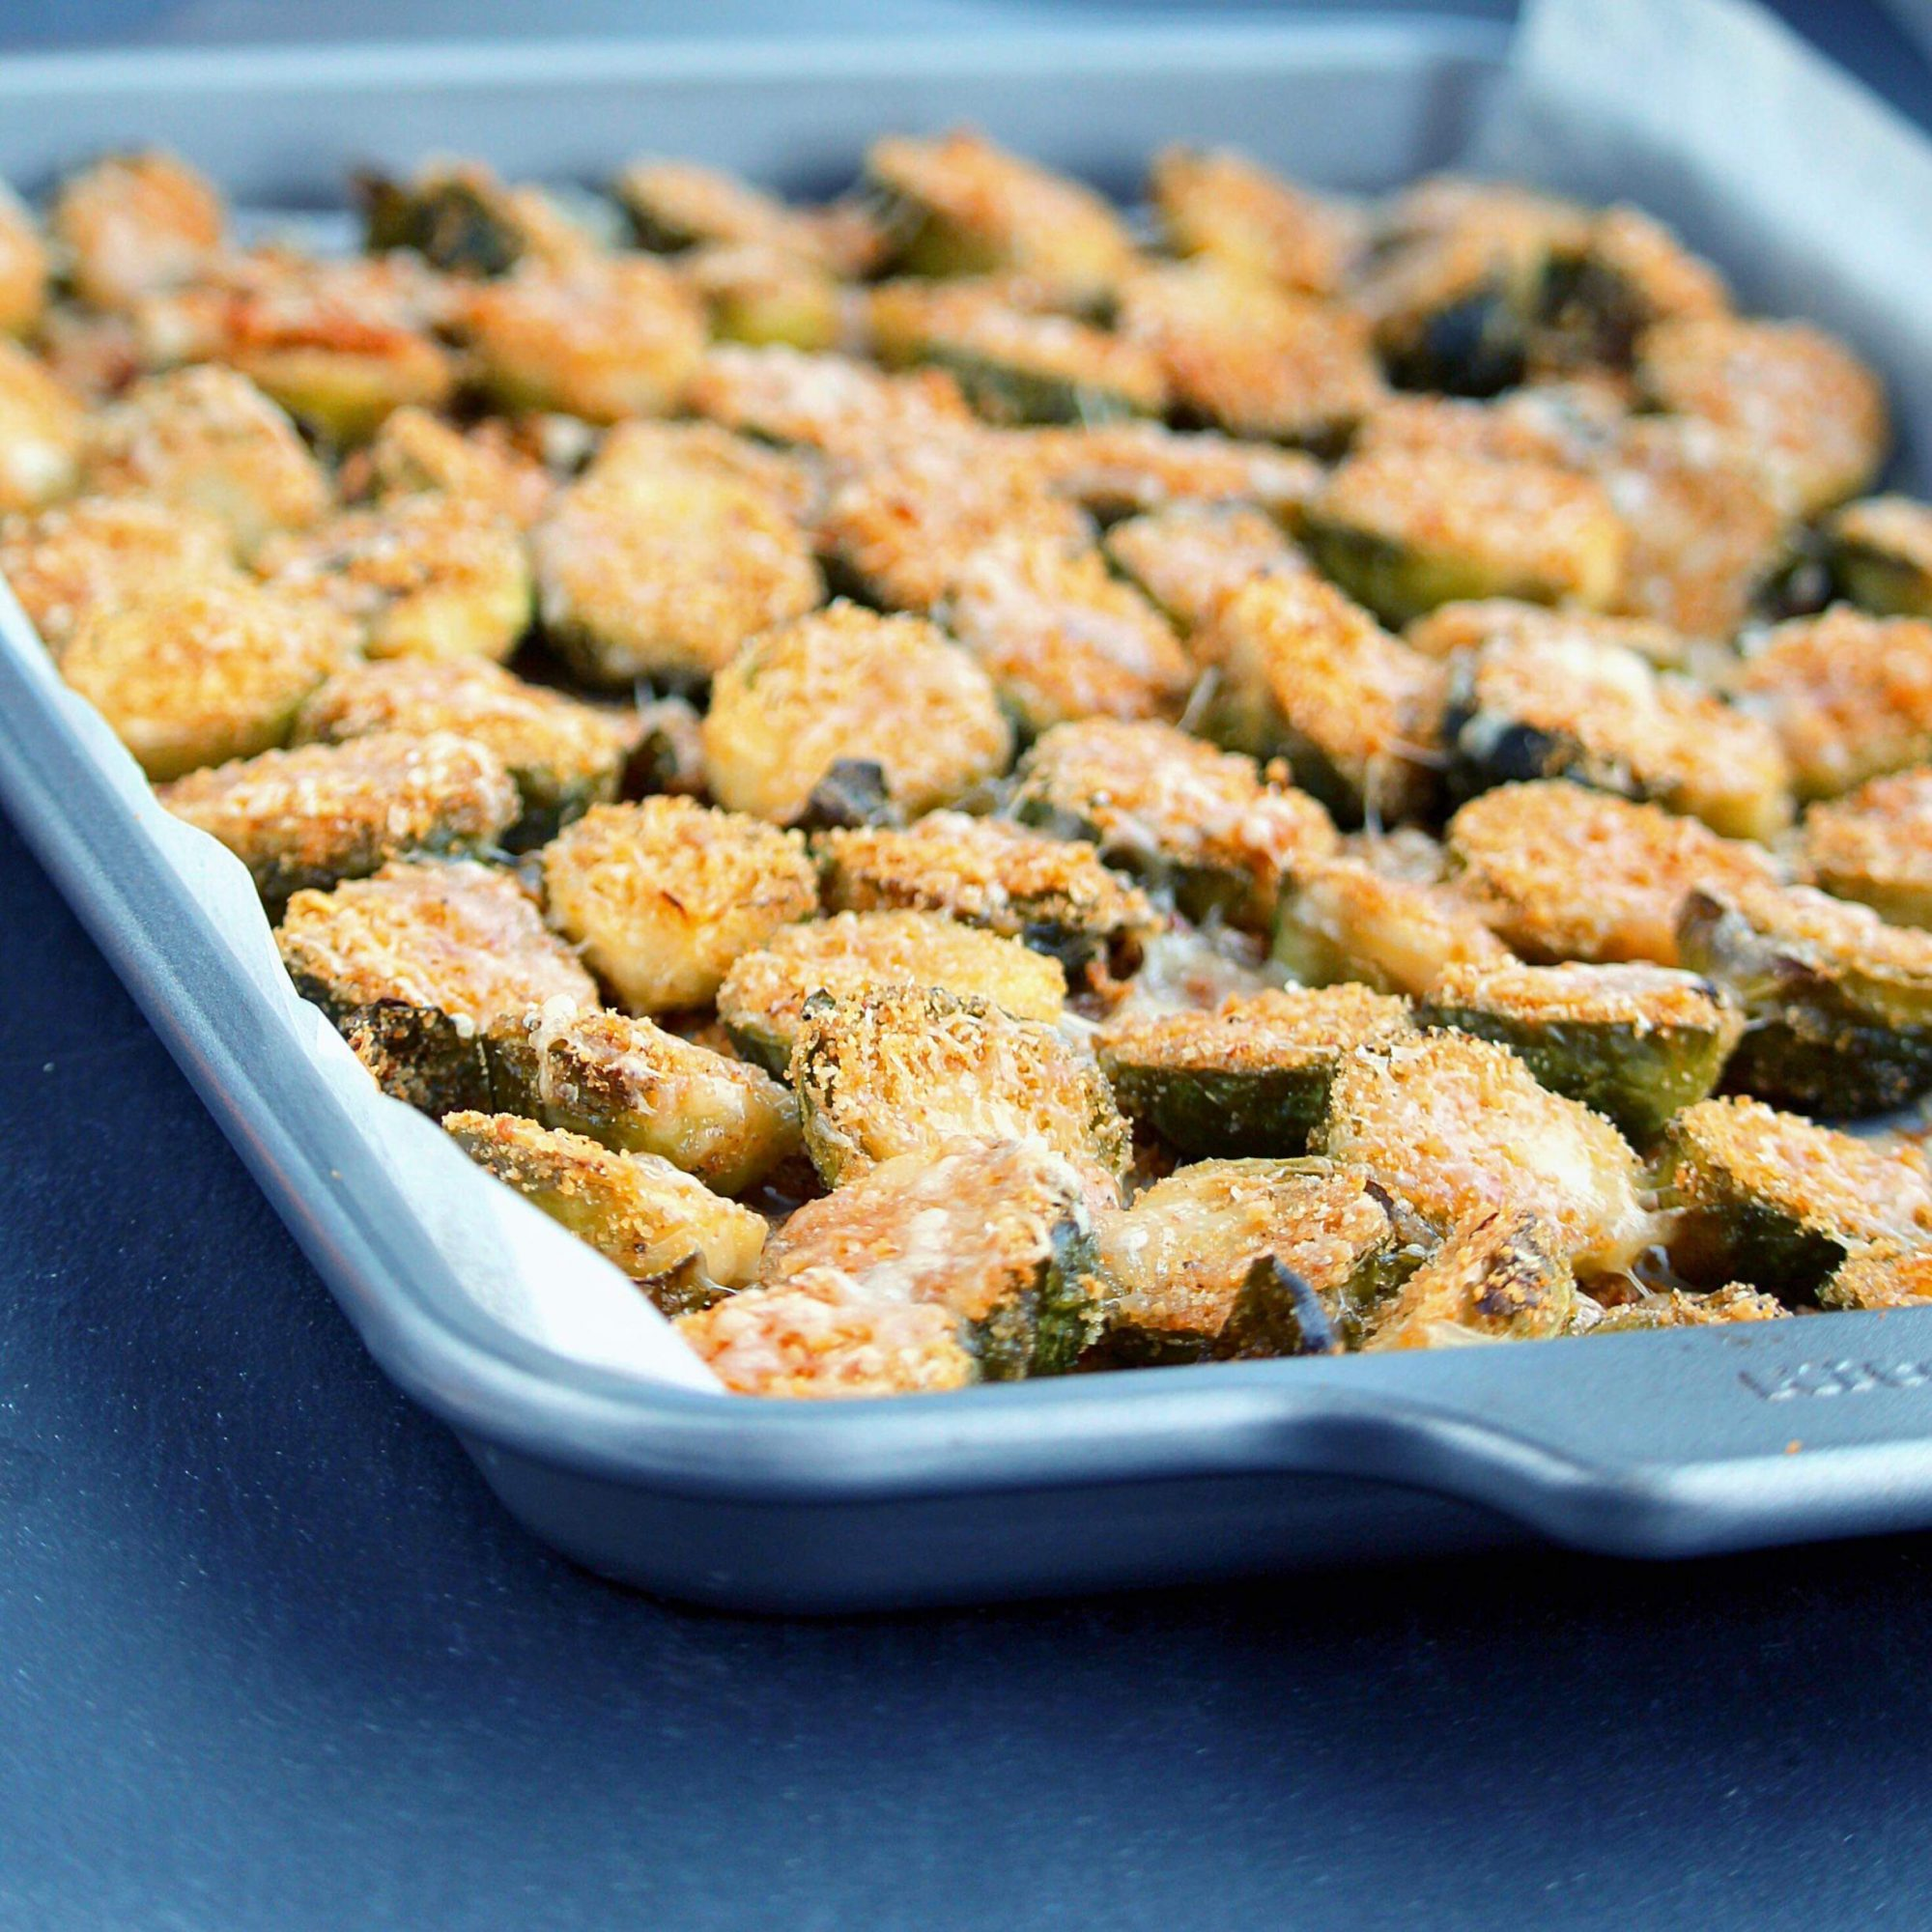 roasted Brussels sprouts coated in Parmesan